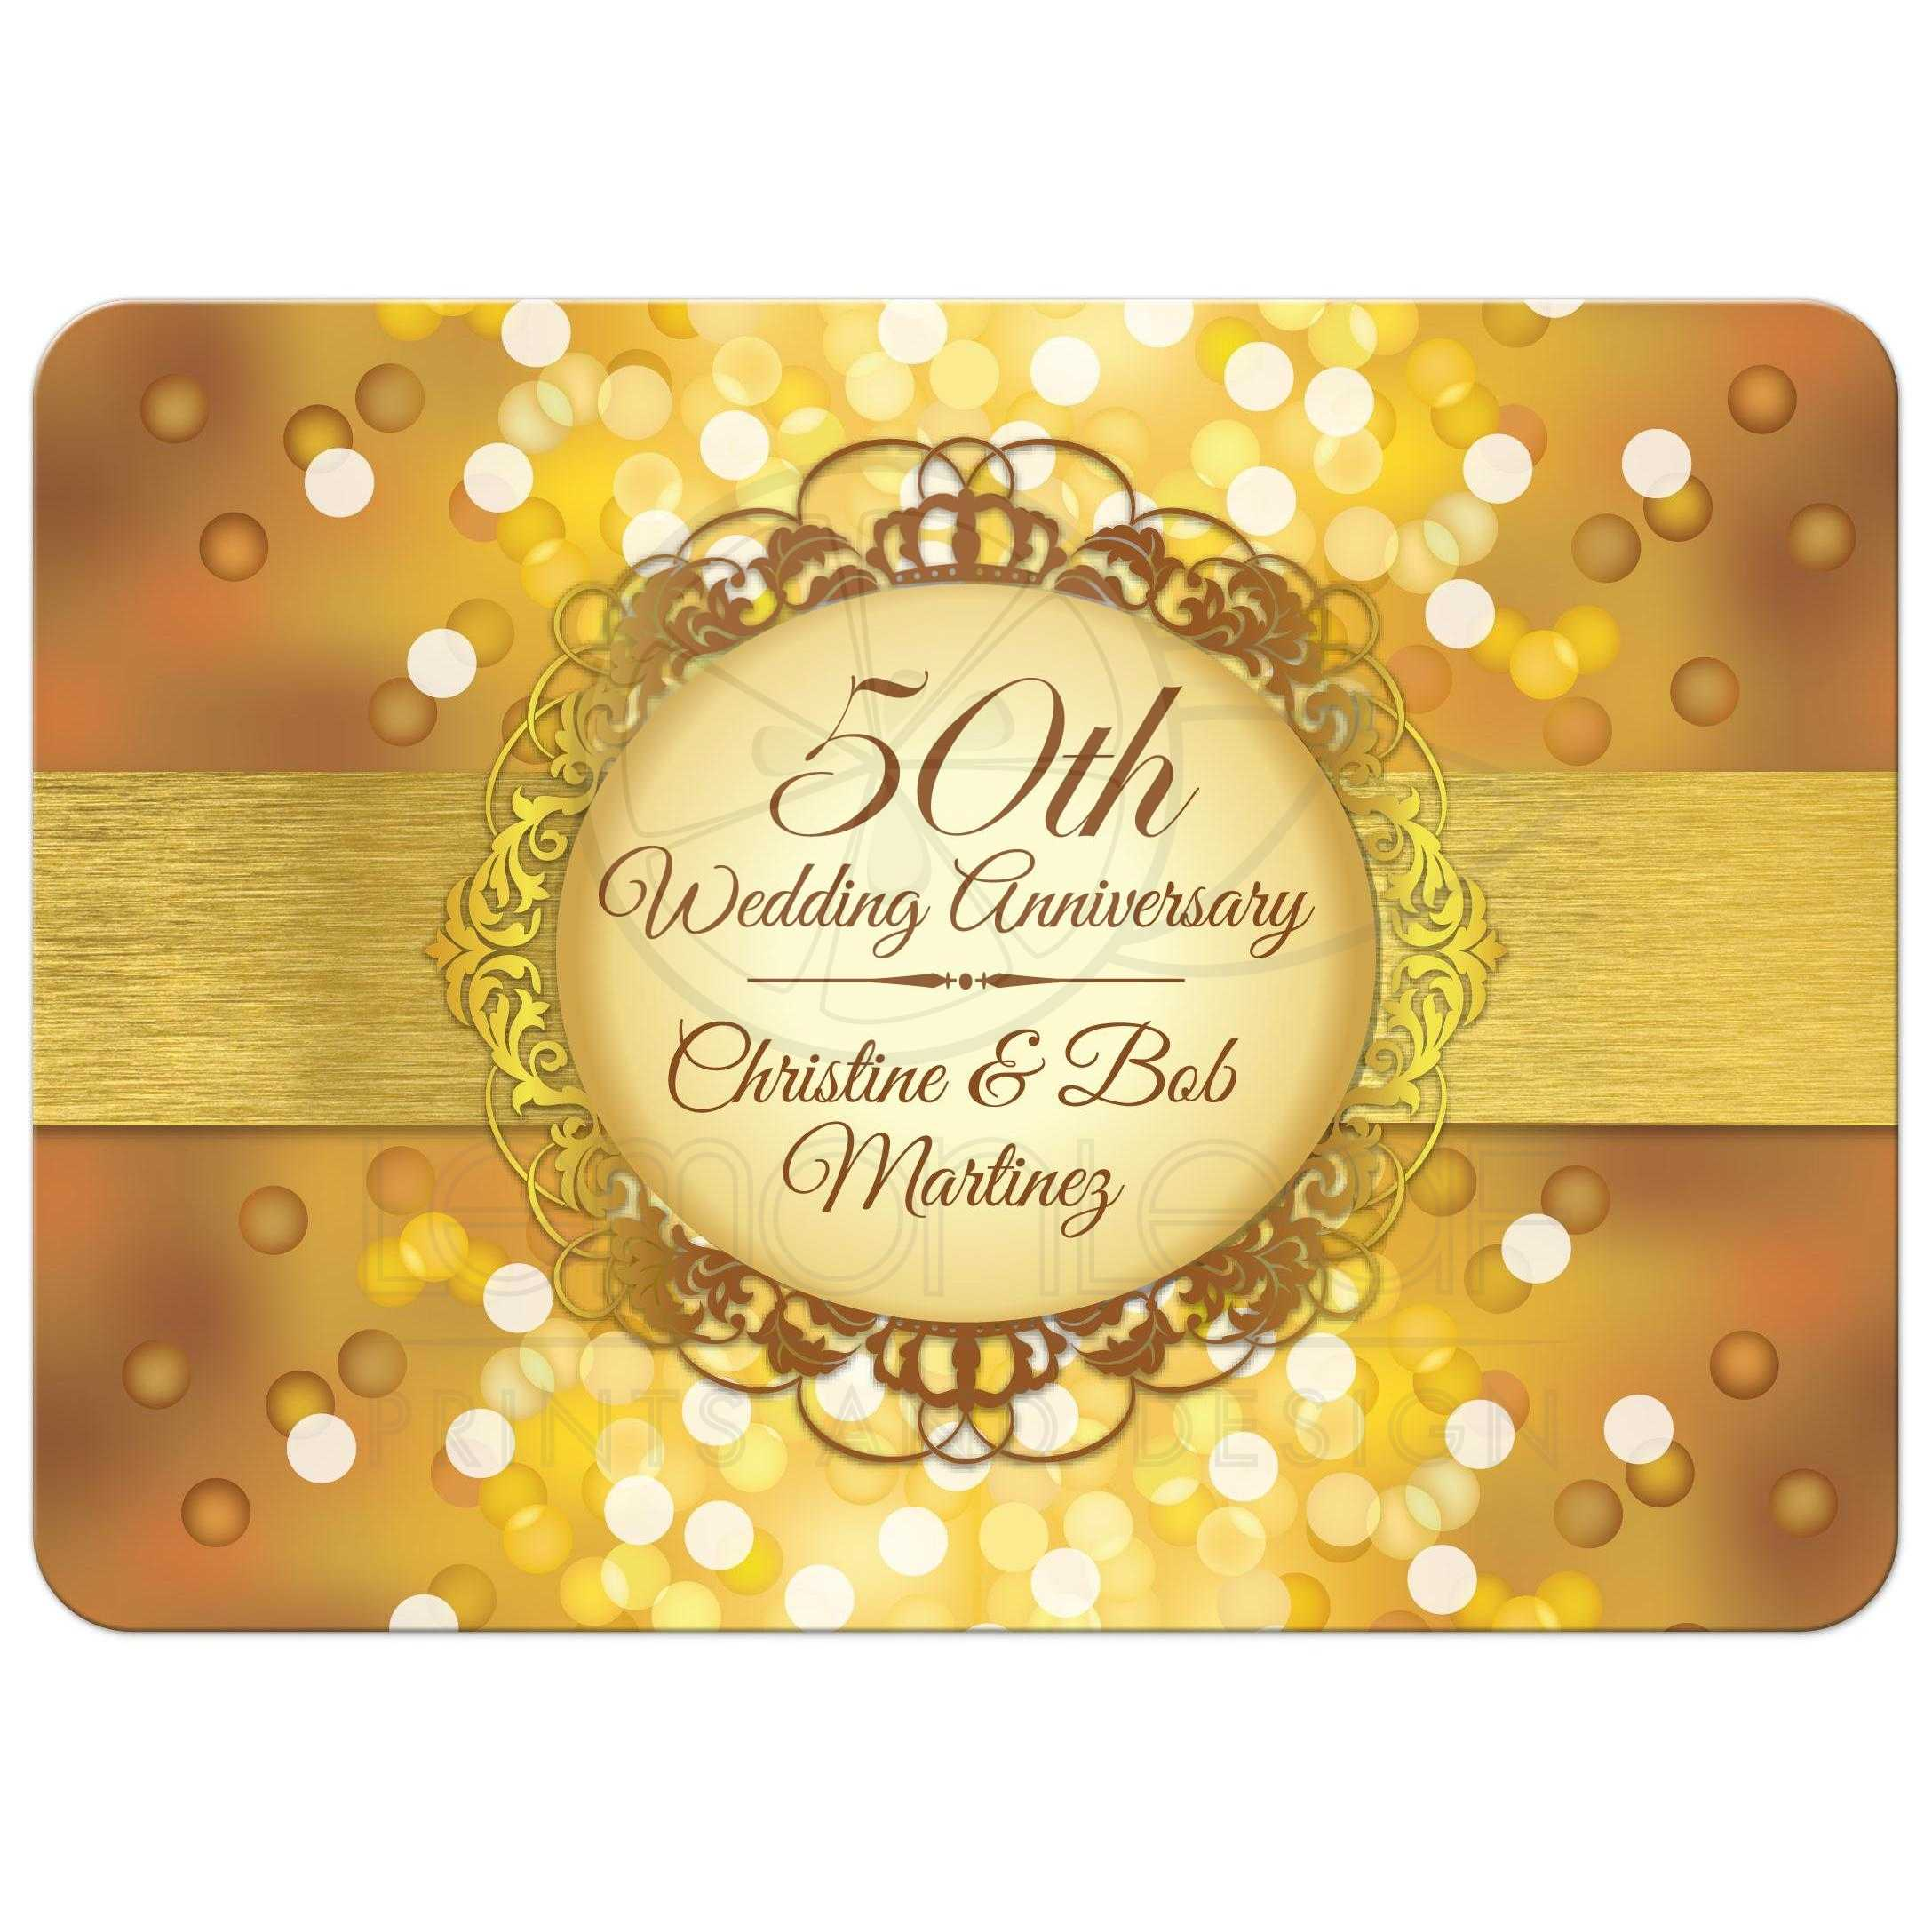 Golden Anniversary Invitations was awesome invitation layout